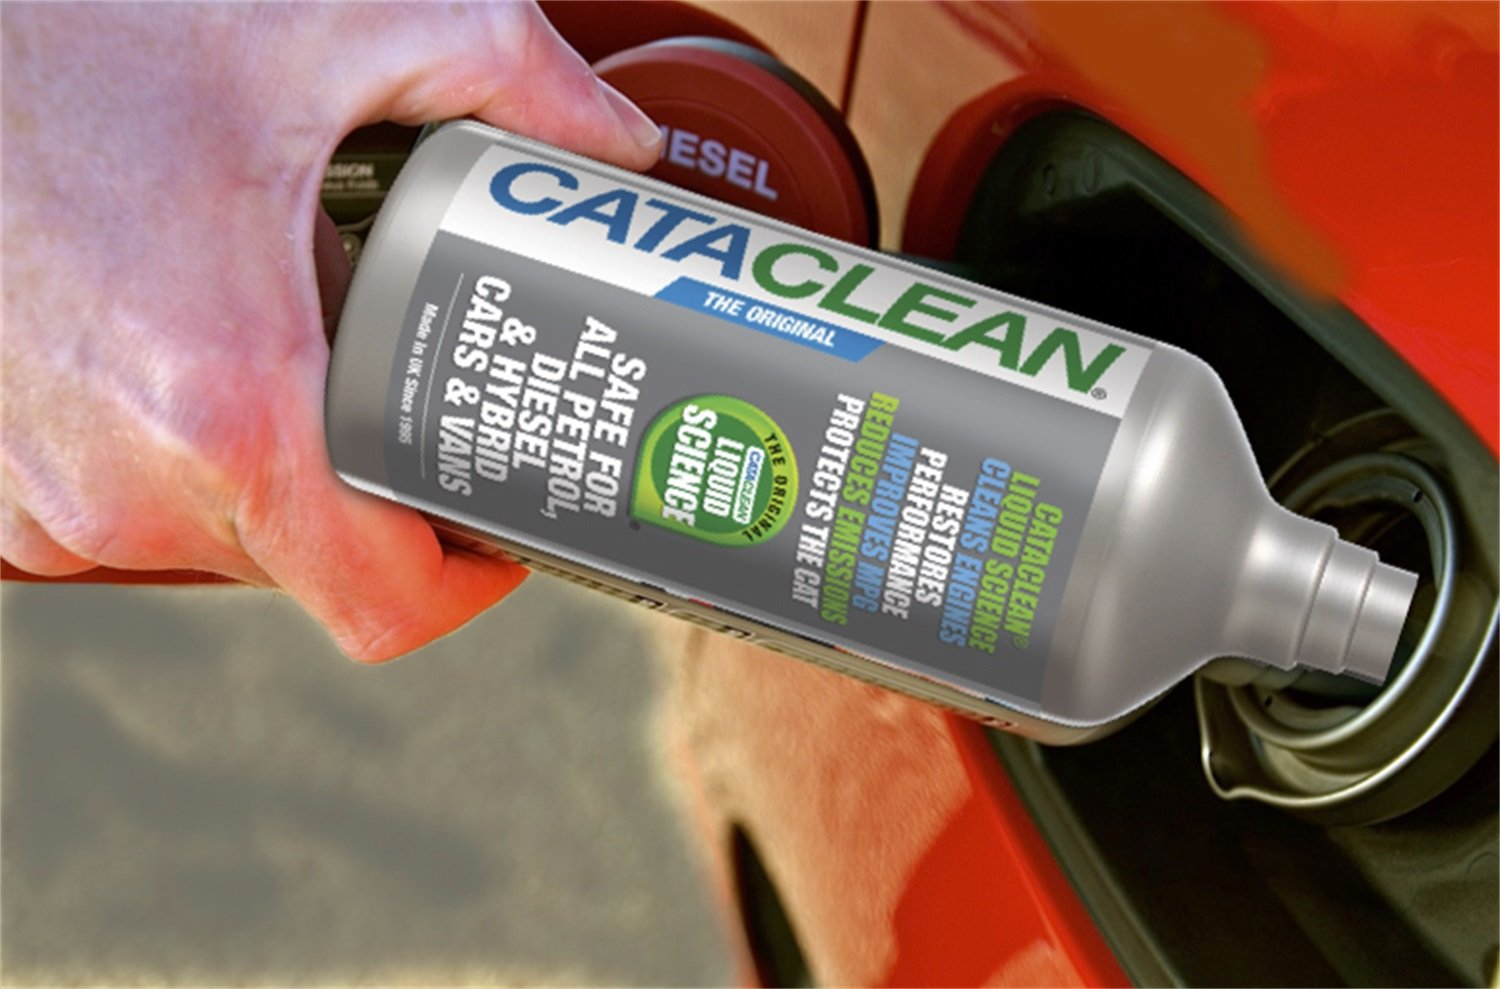 Cataclean 120009CAT Fuel & Exhaust System Cleaner (5 Liter) by Cataclean